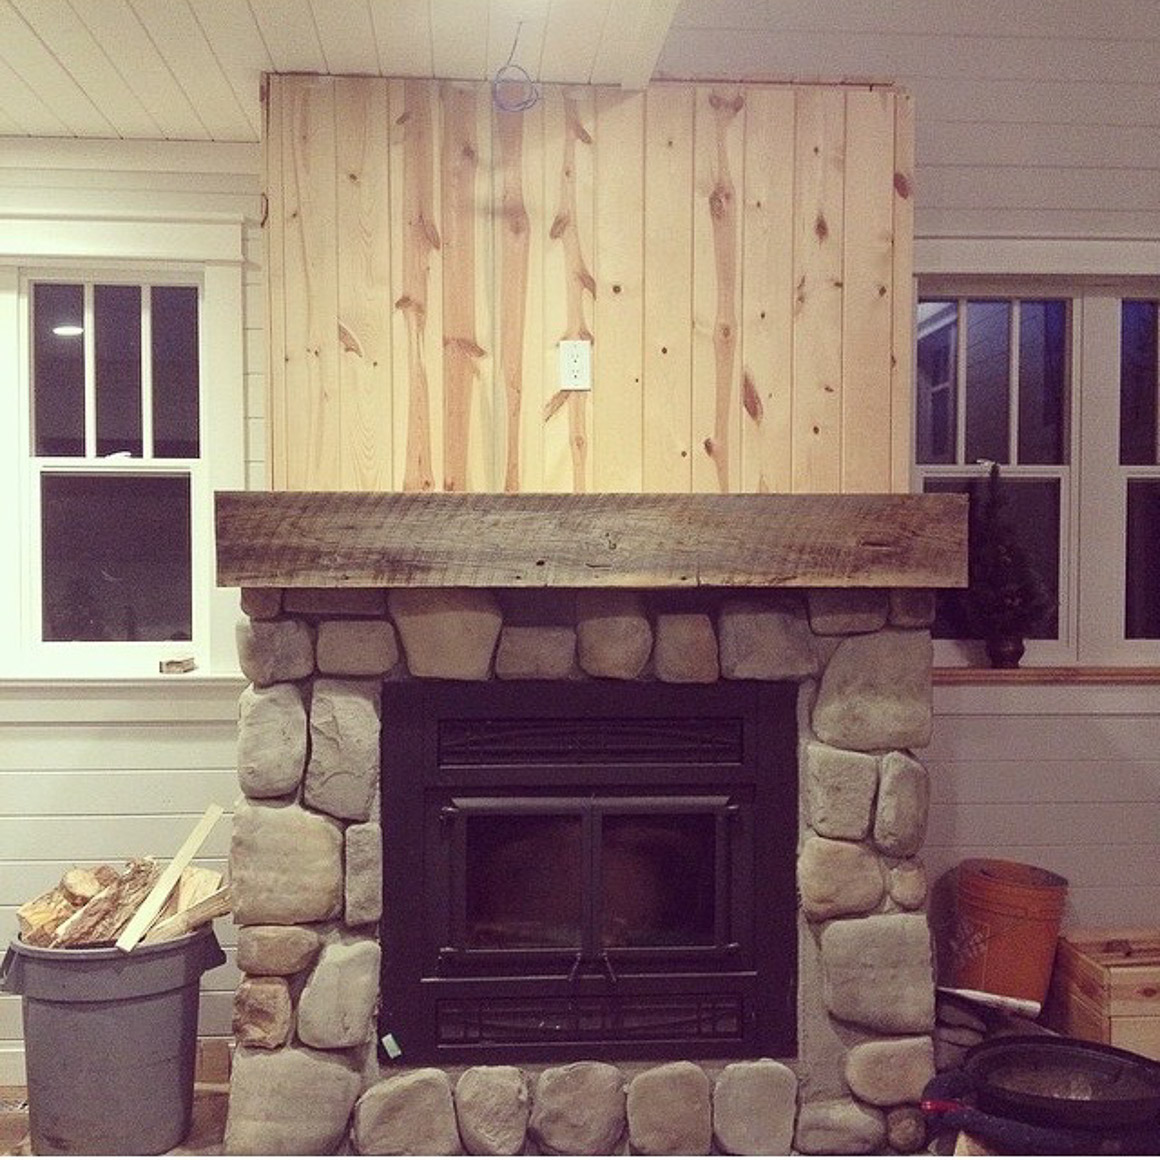 stone-face-fireplace-with-rustic-wood-mantel-4